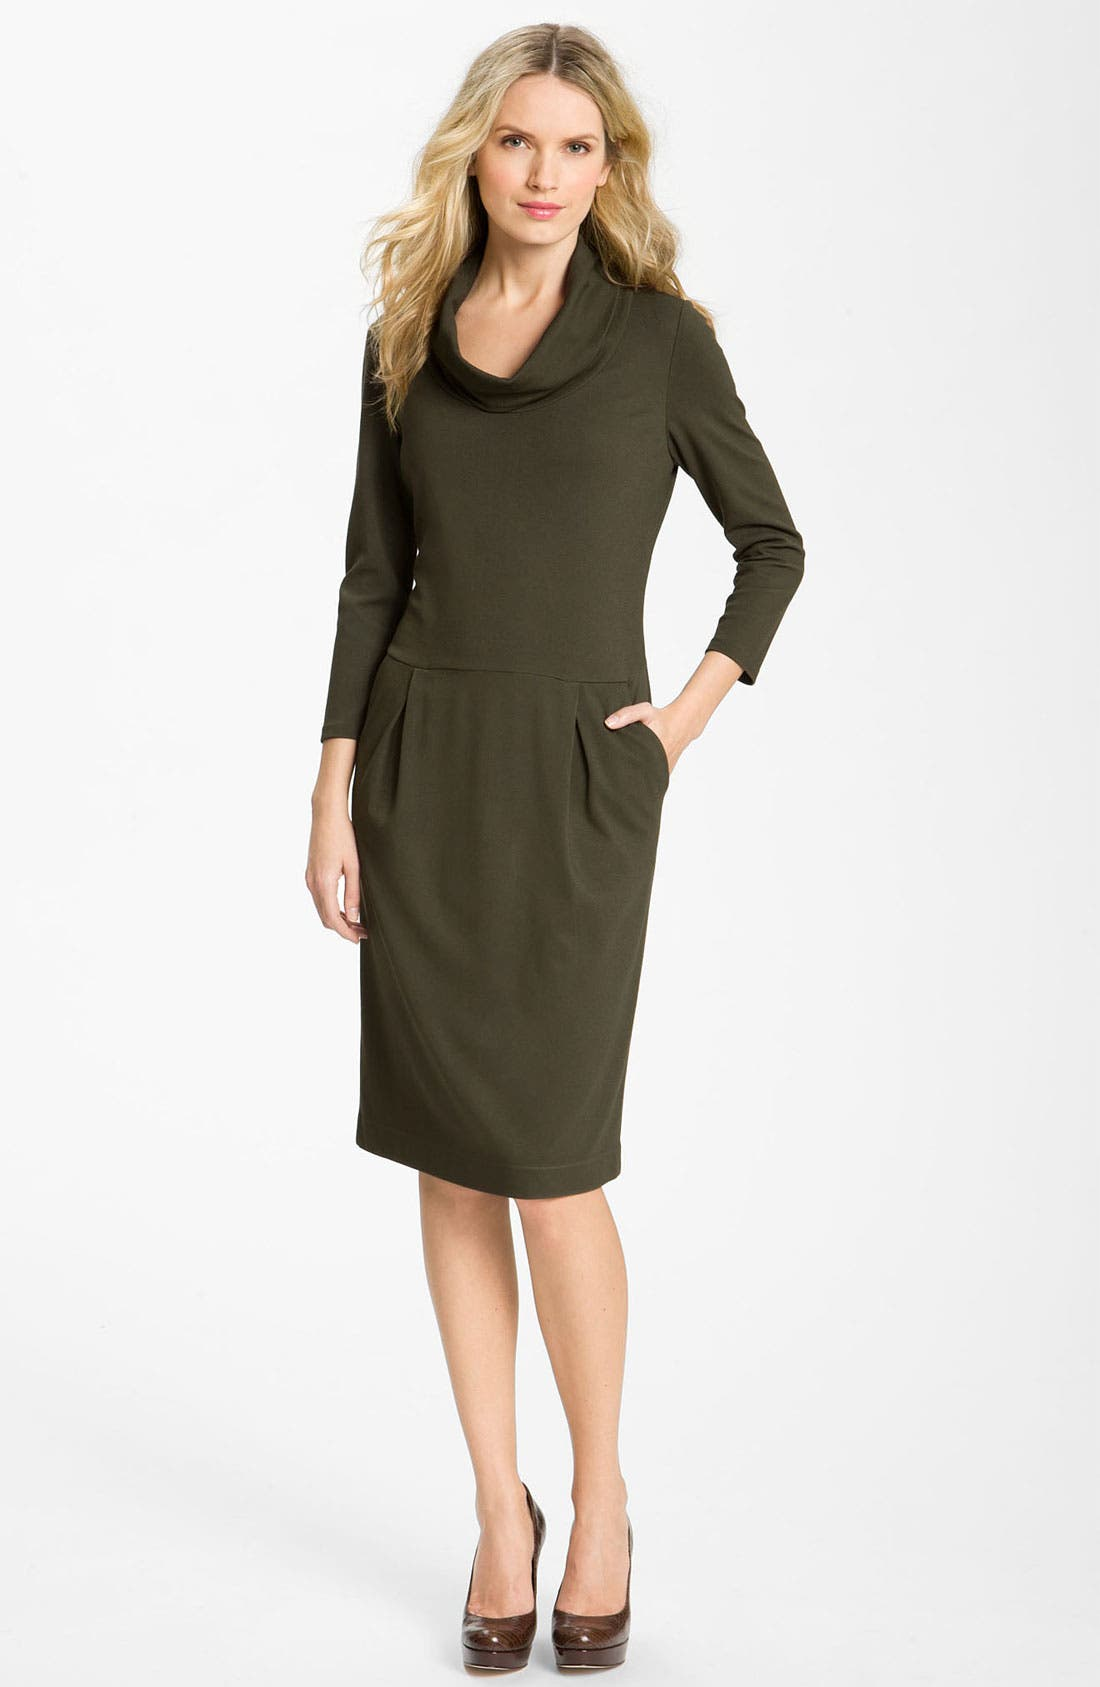 Alternate Image 1 Selected - Lafayette 148 New York 'Milano' Cowl Neck Dress